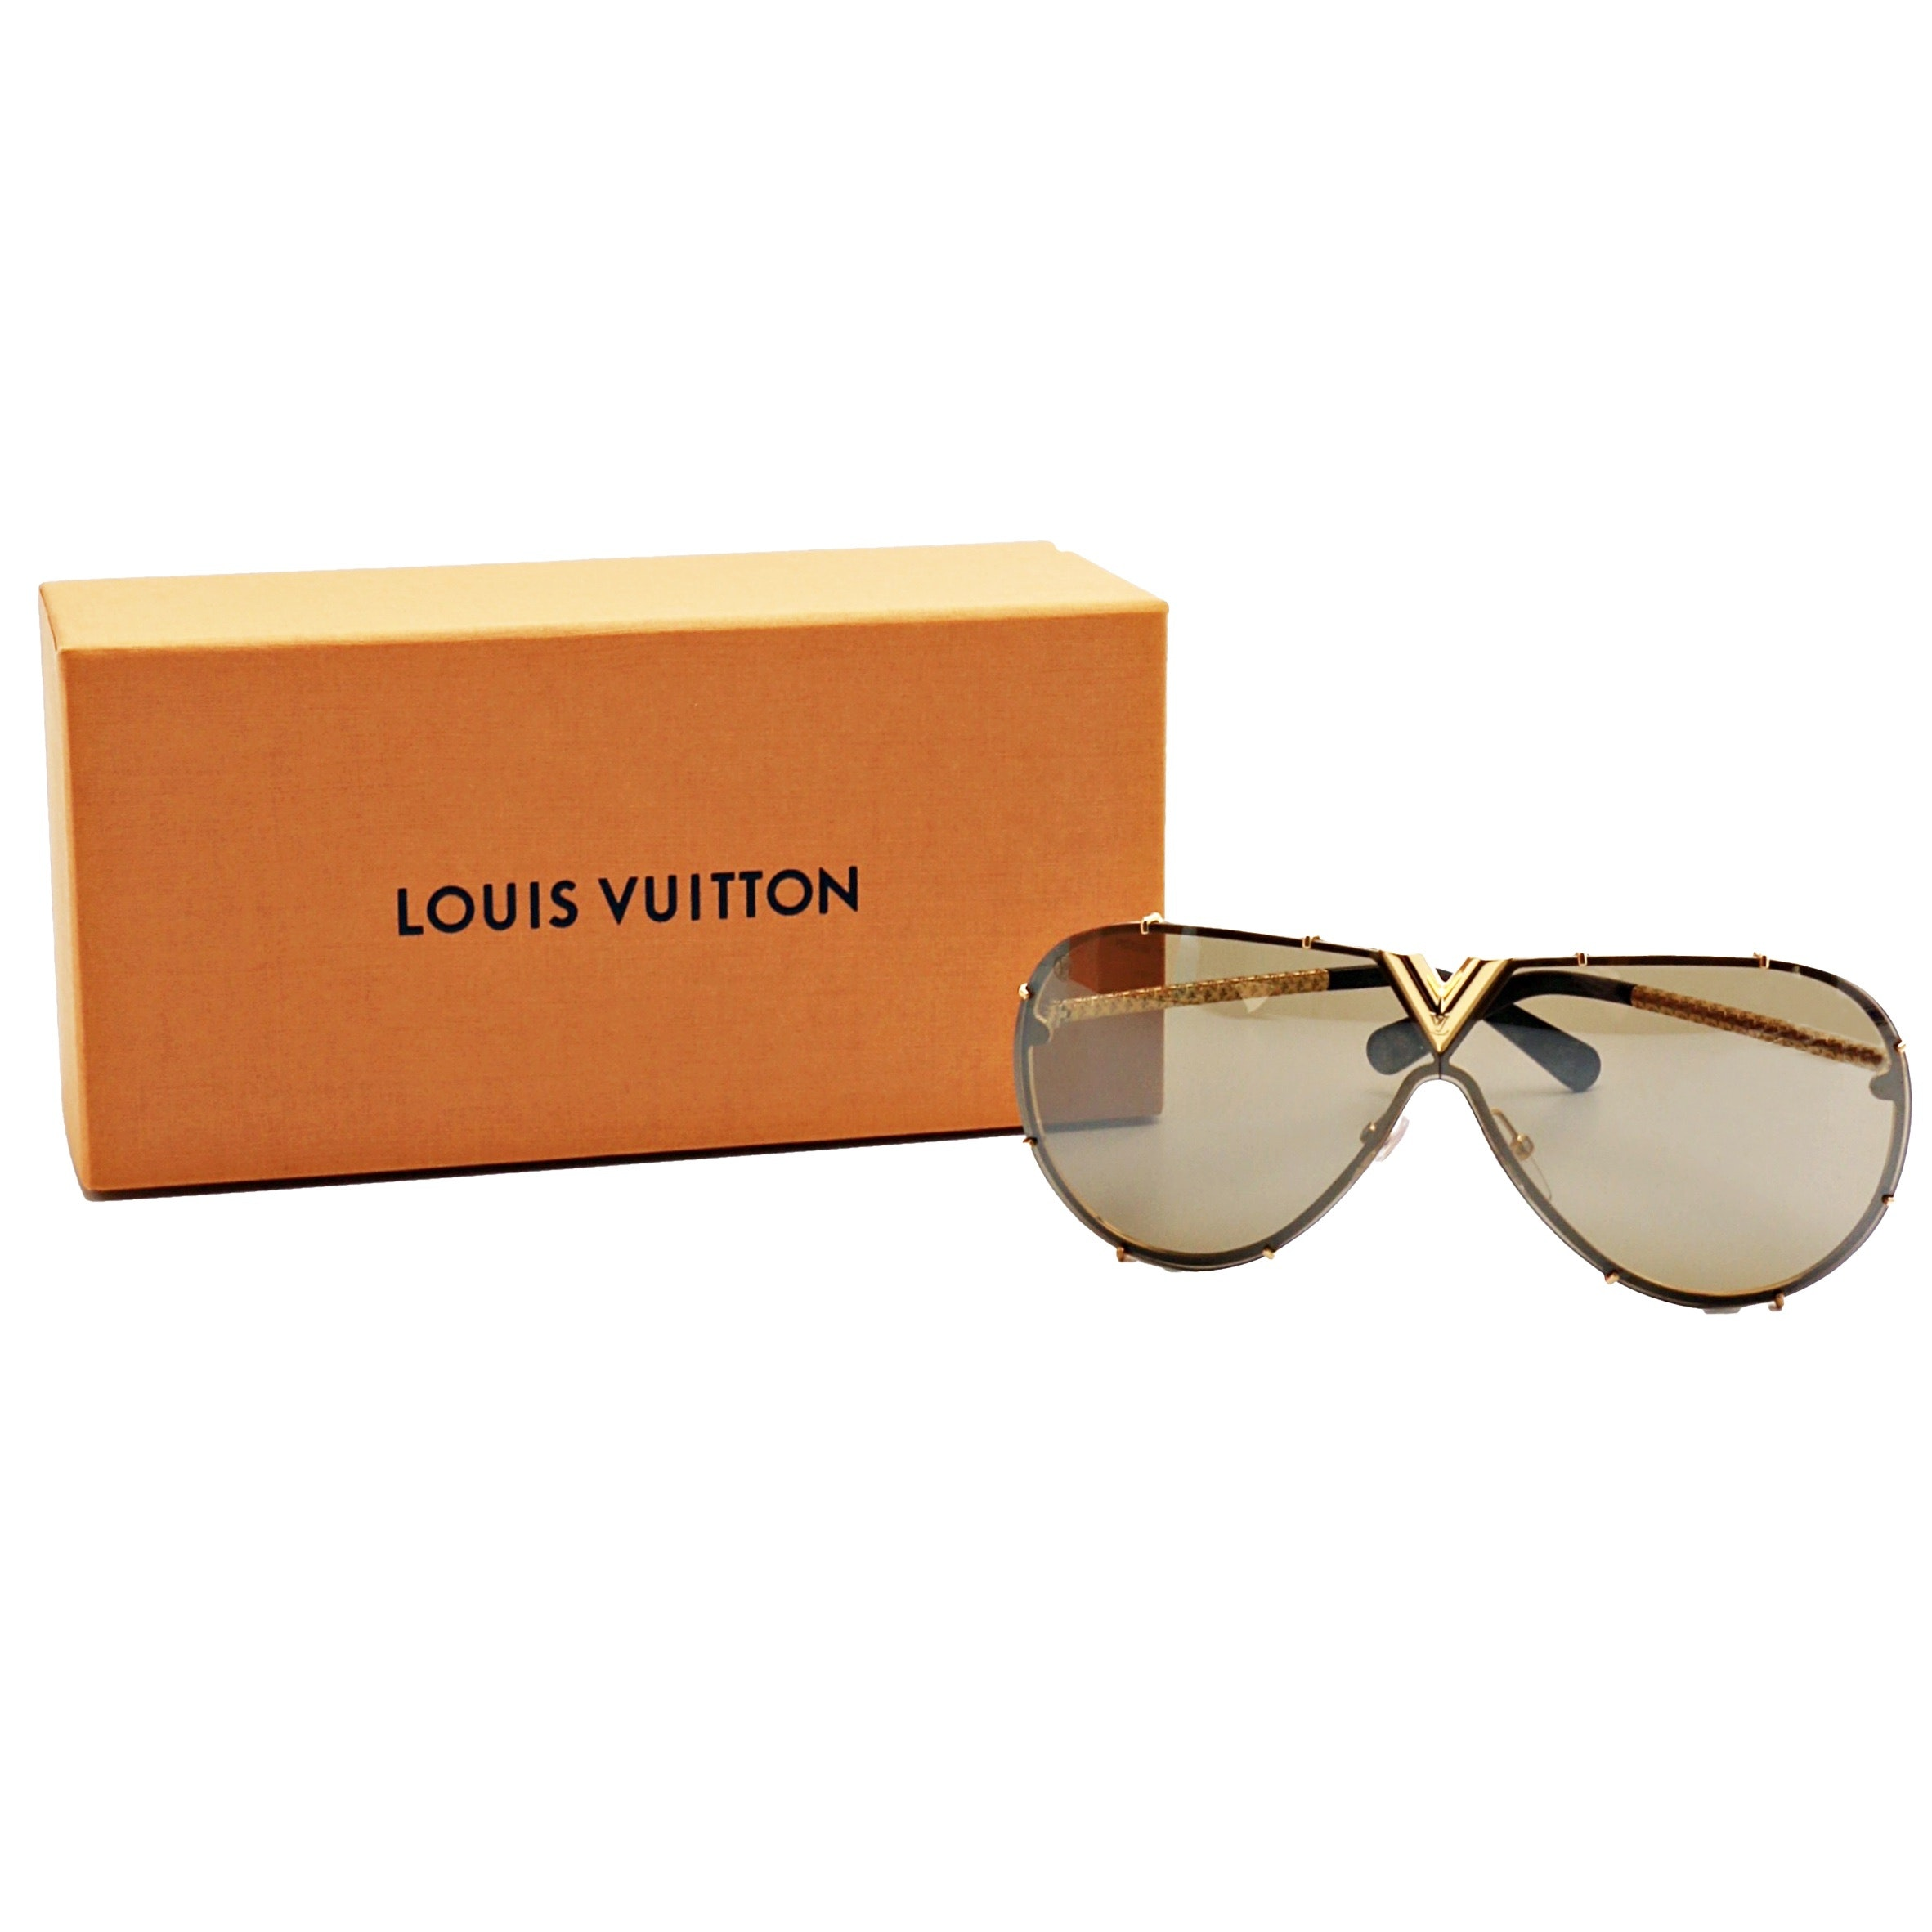 """Louis Vuitton """"Drive"""" Silver Sunglasses with Case, Box and Bag"""